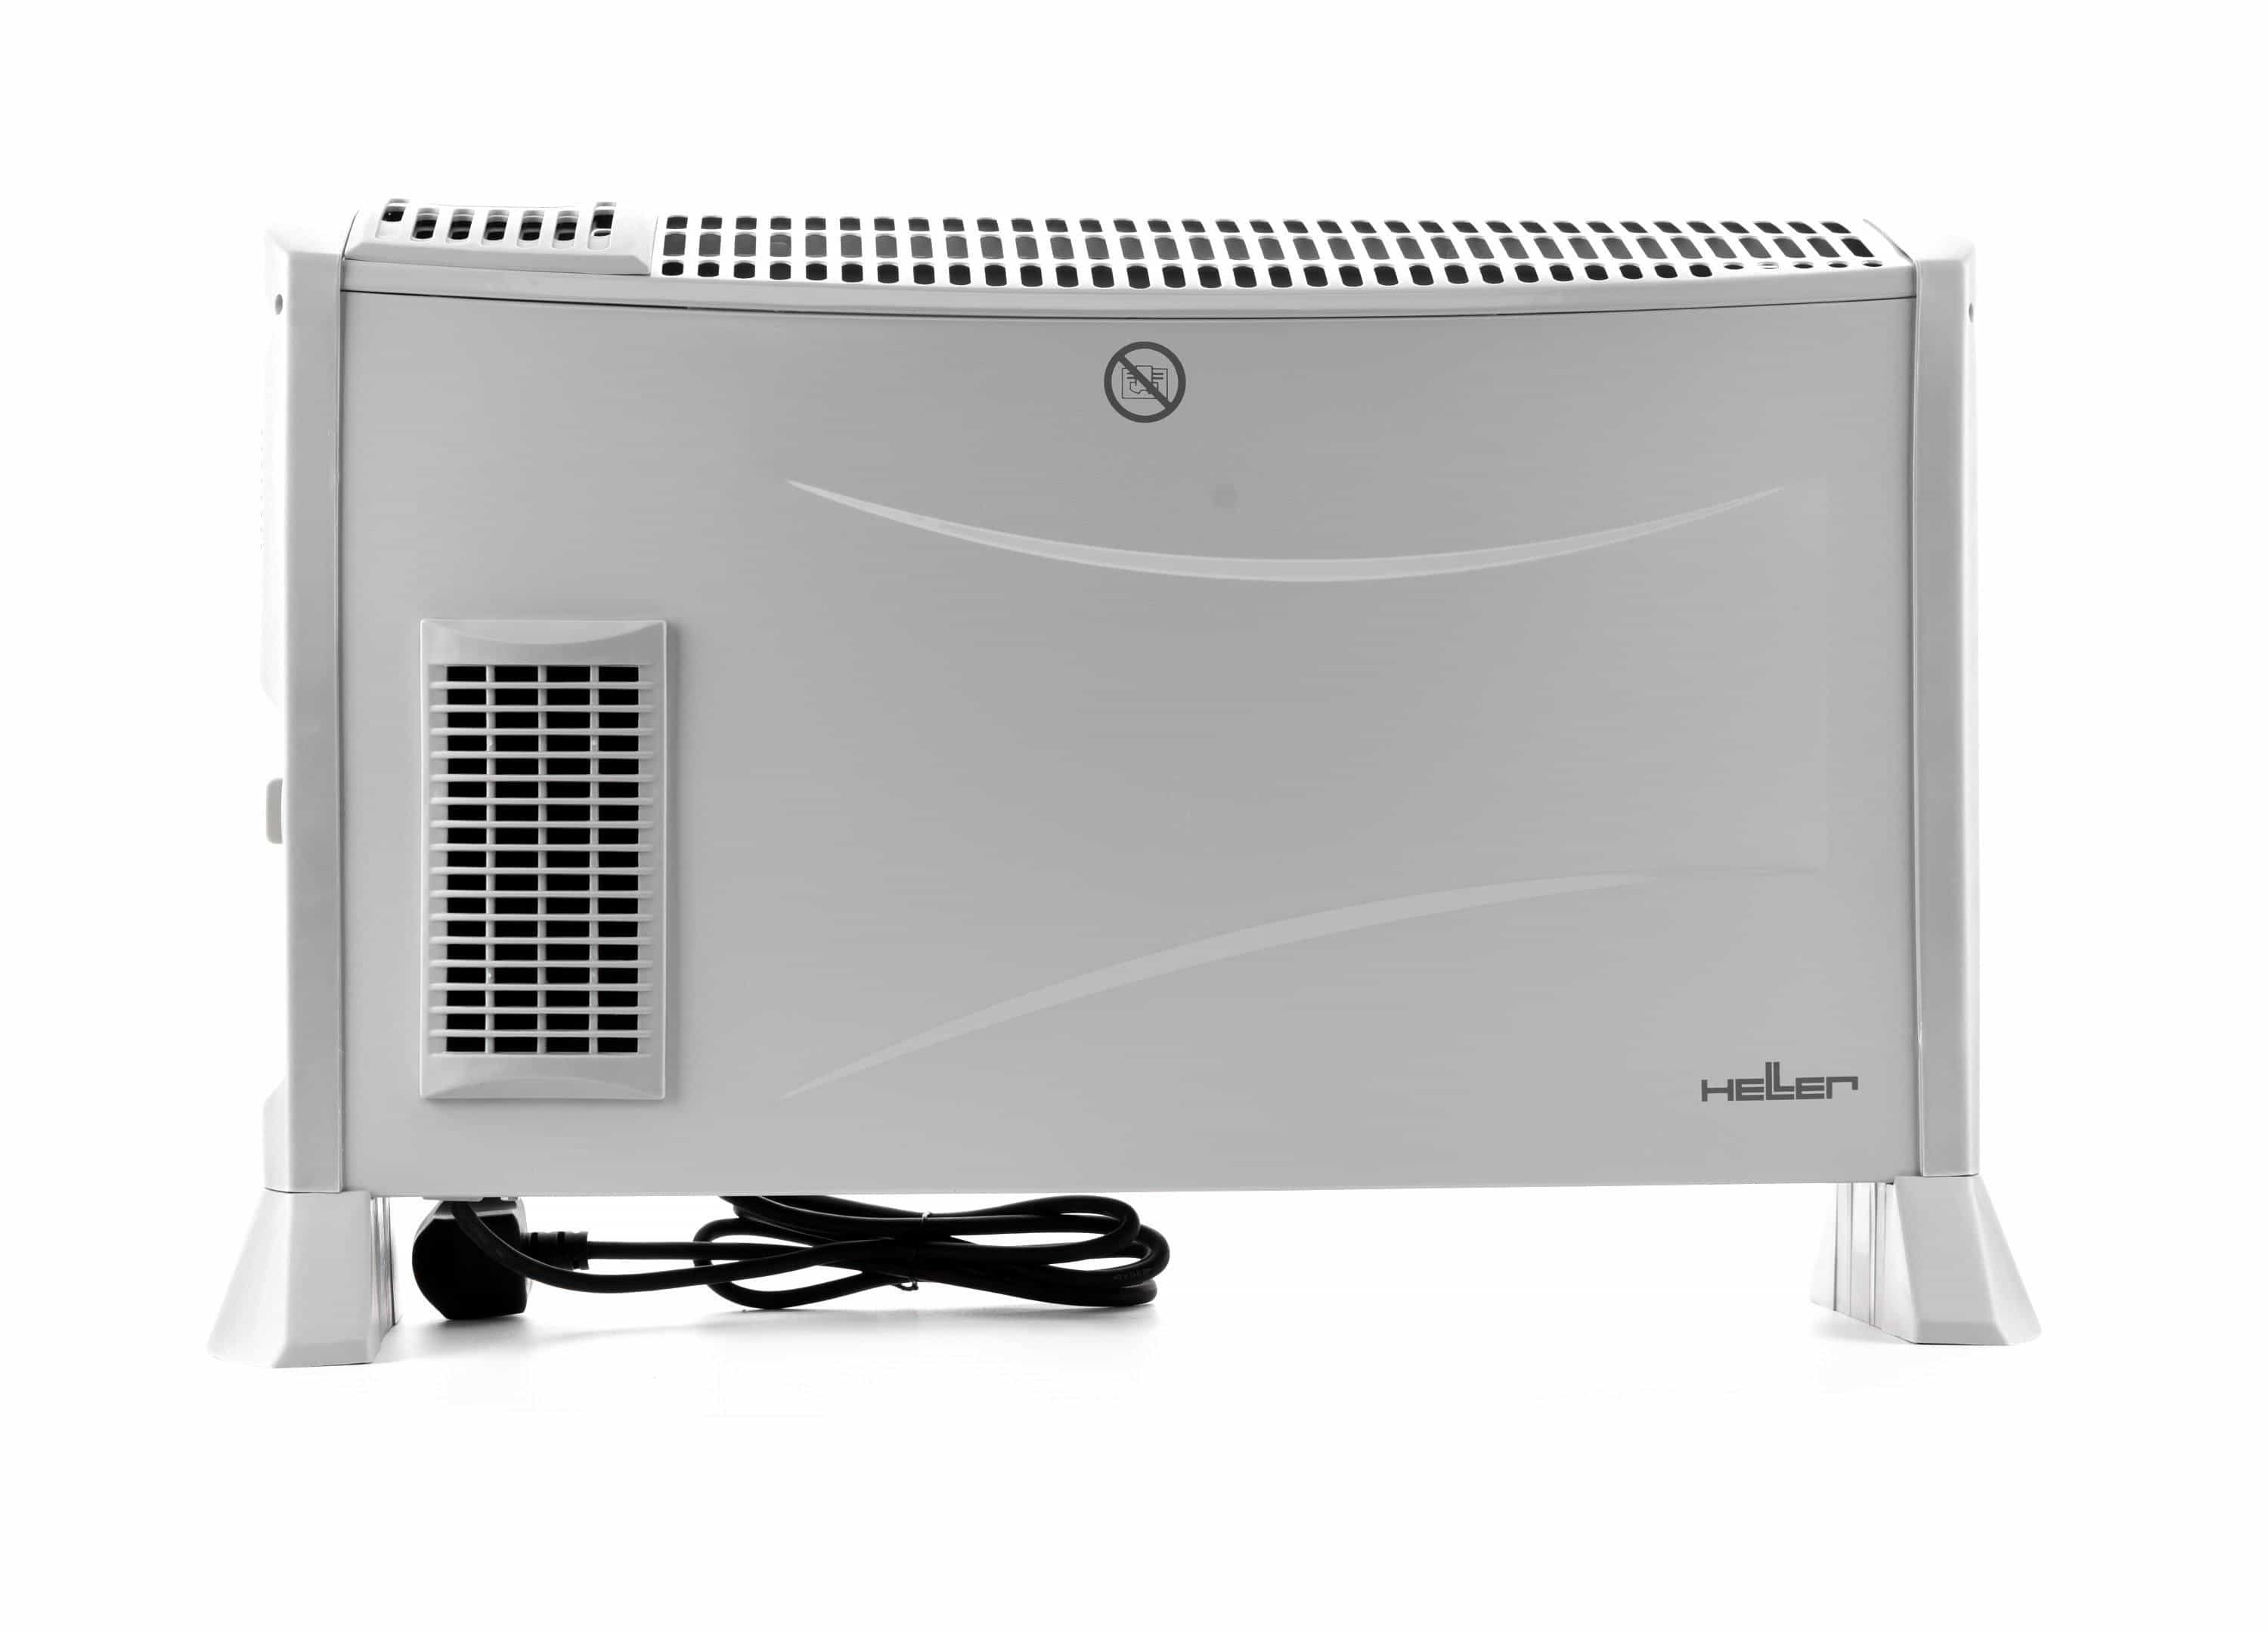 Compare Heller Convector Heater at KSA Price